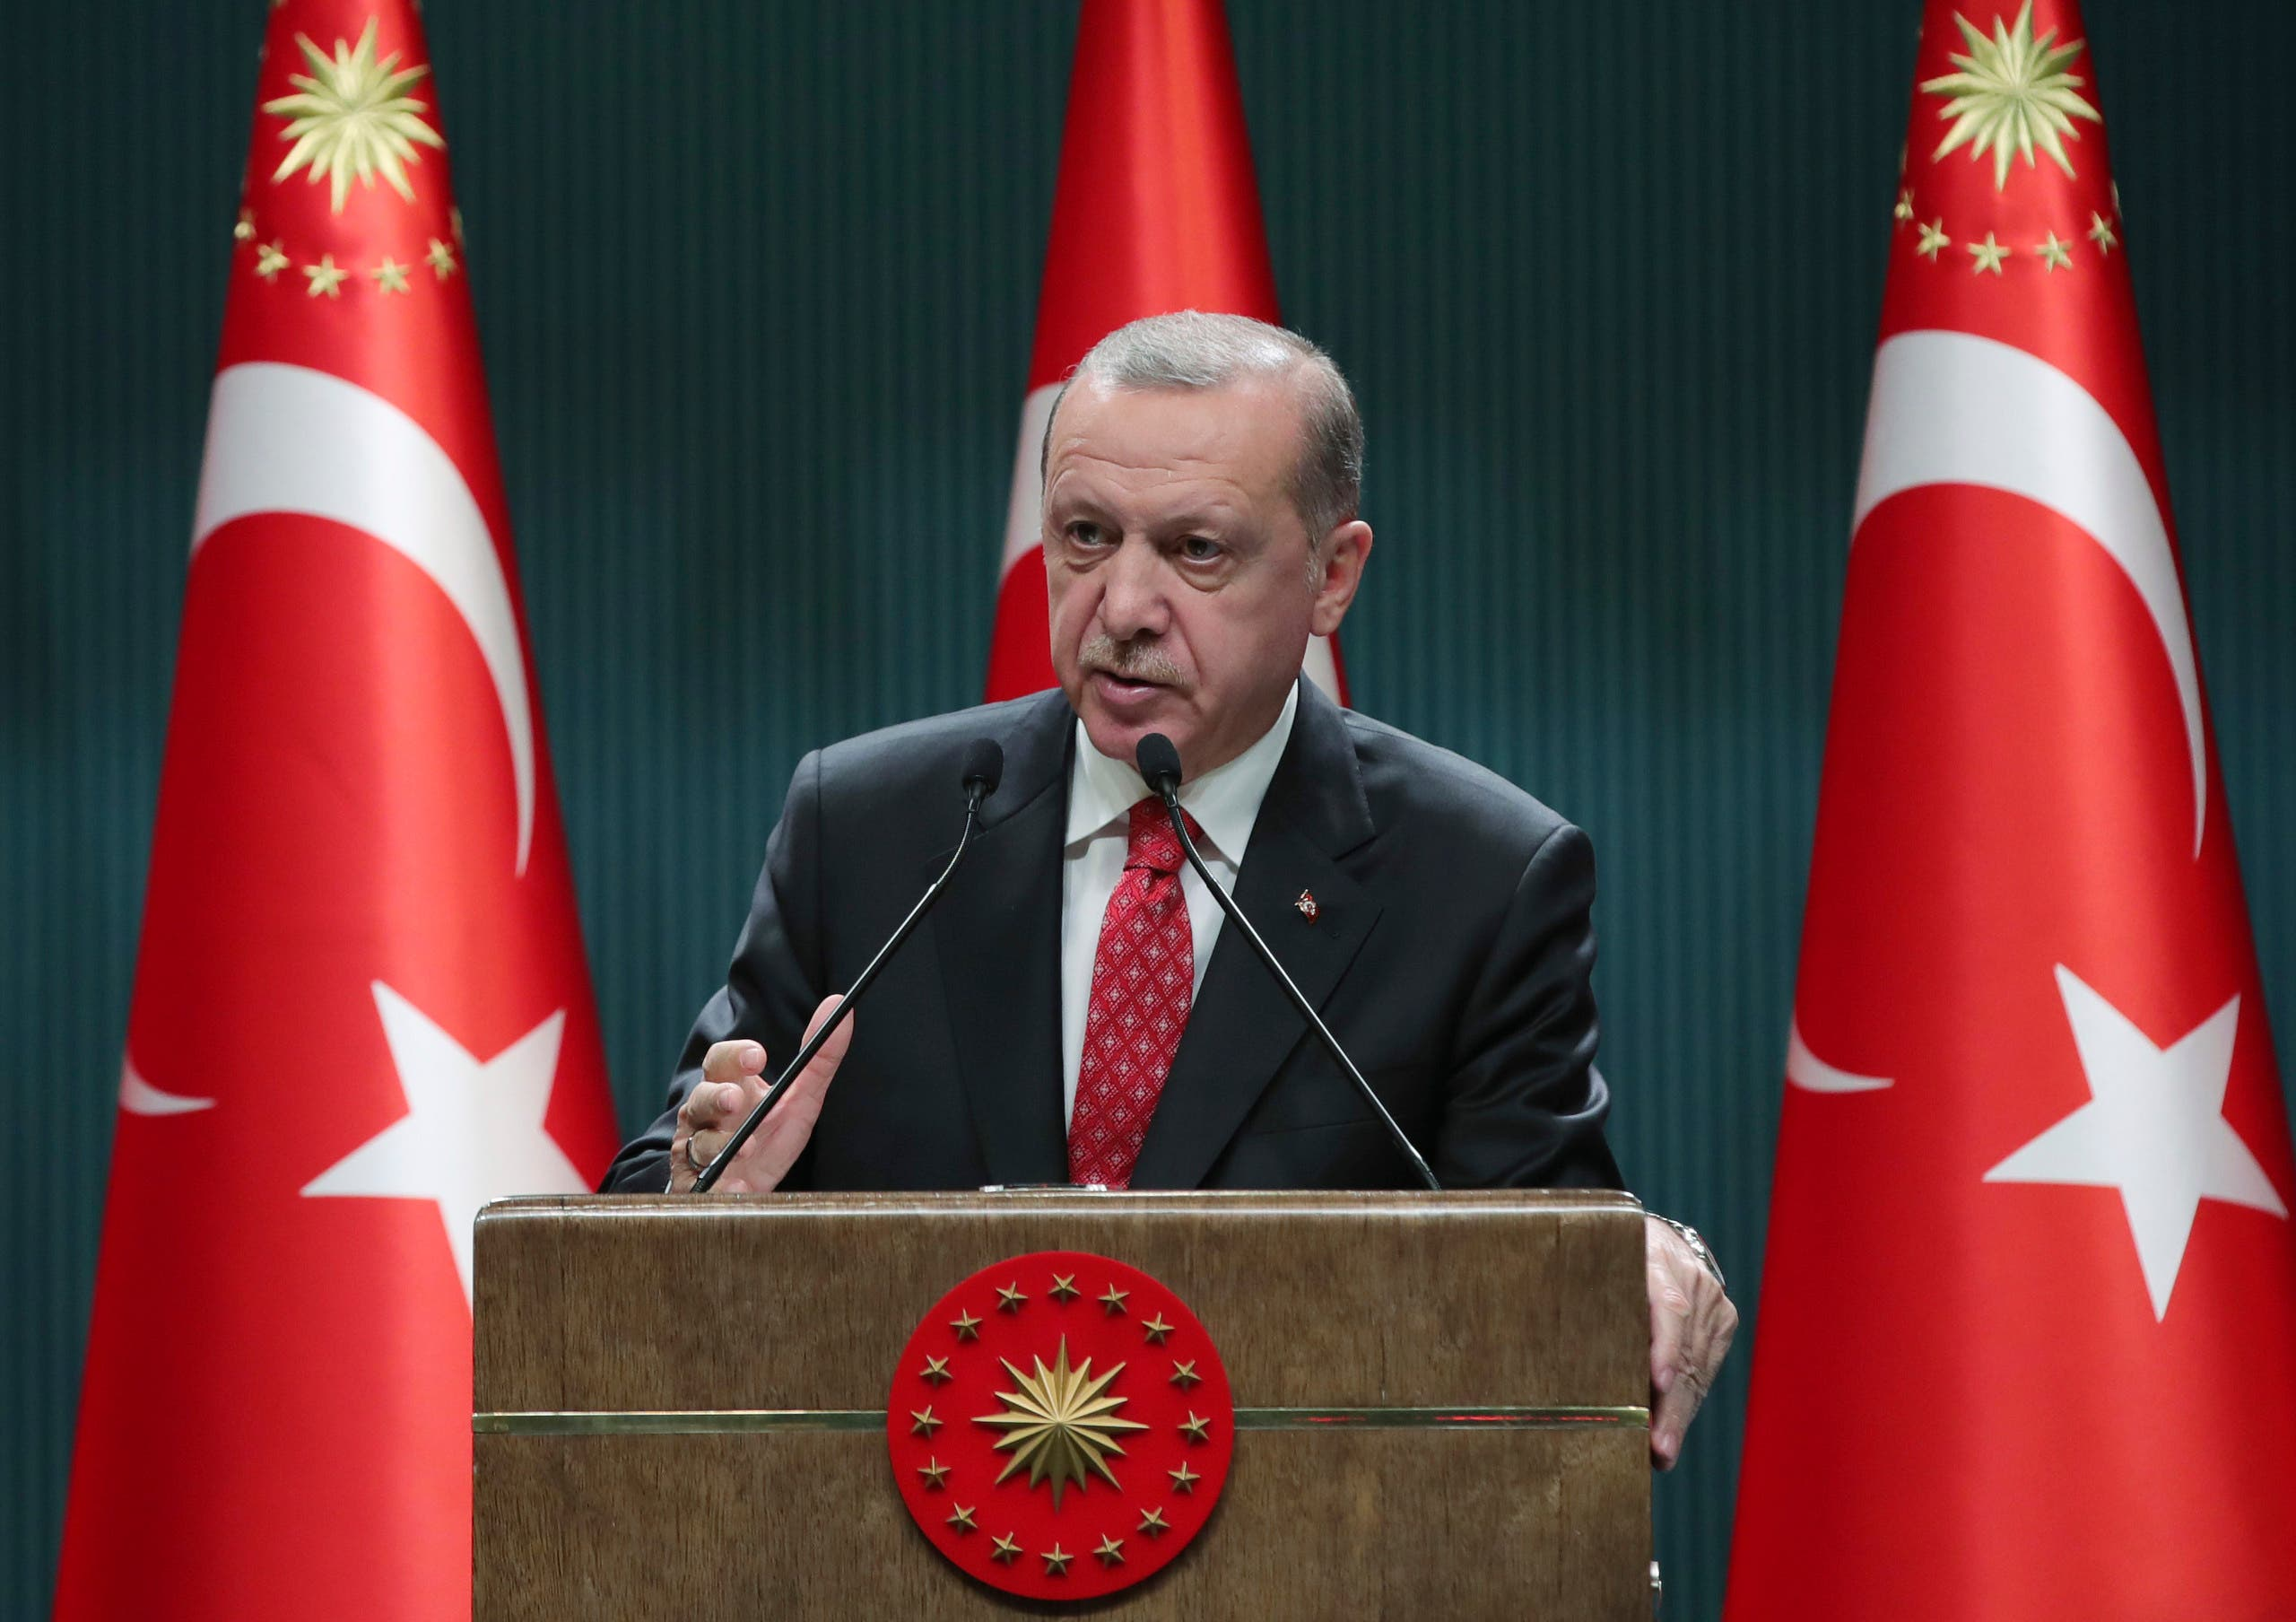 Turkish President Recep Tayyip Erdogan speaks in Ankara on June 9, 2020. (AP)